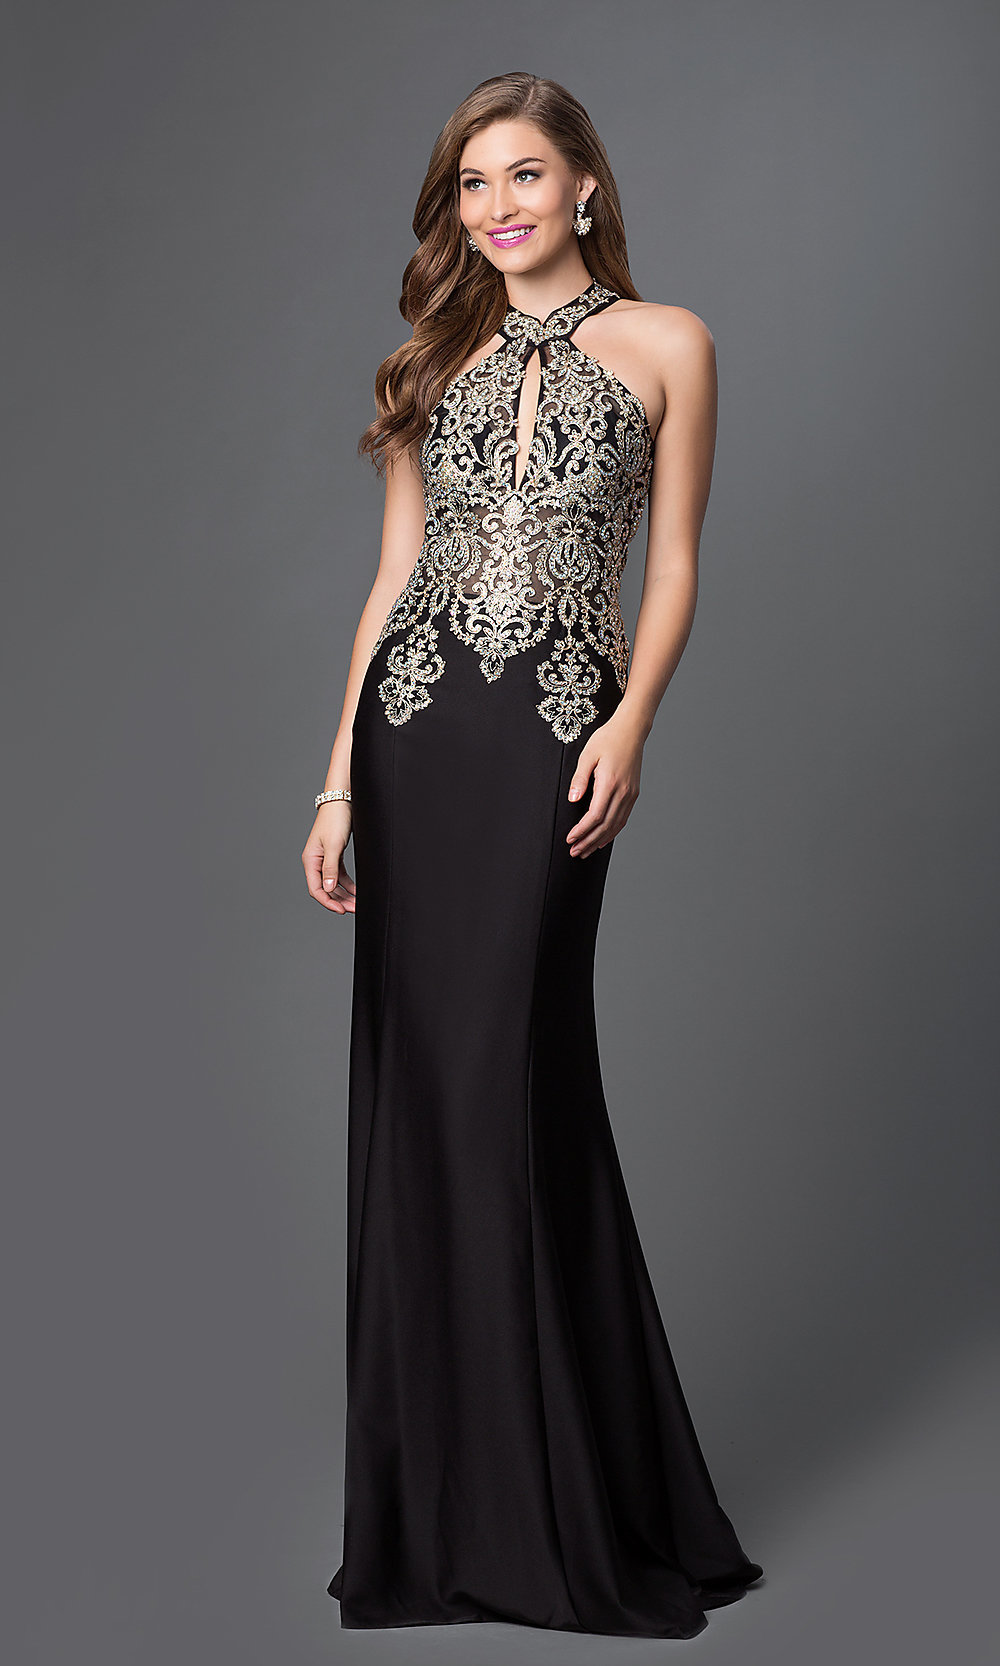 Long Lace High Halter Neck Evening Gown - PromGirl